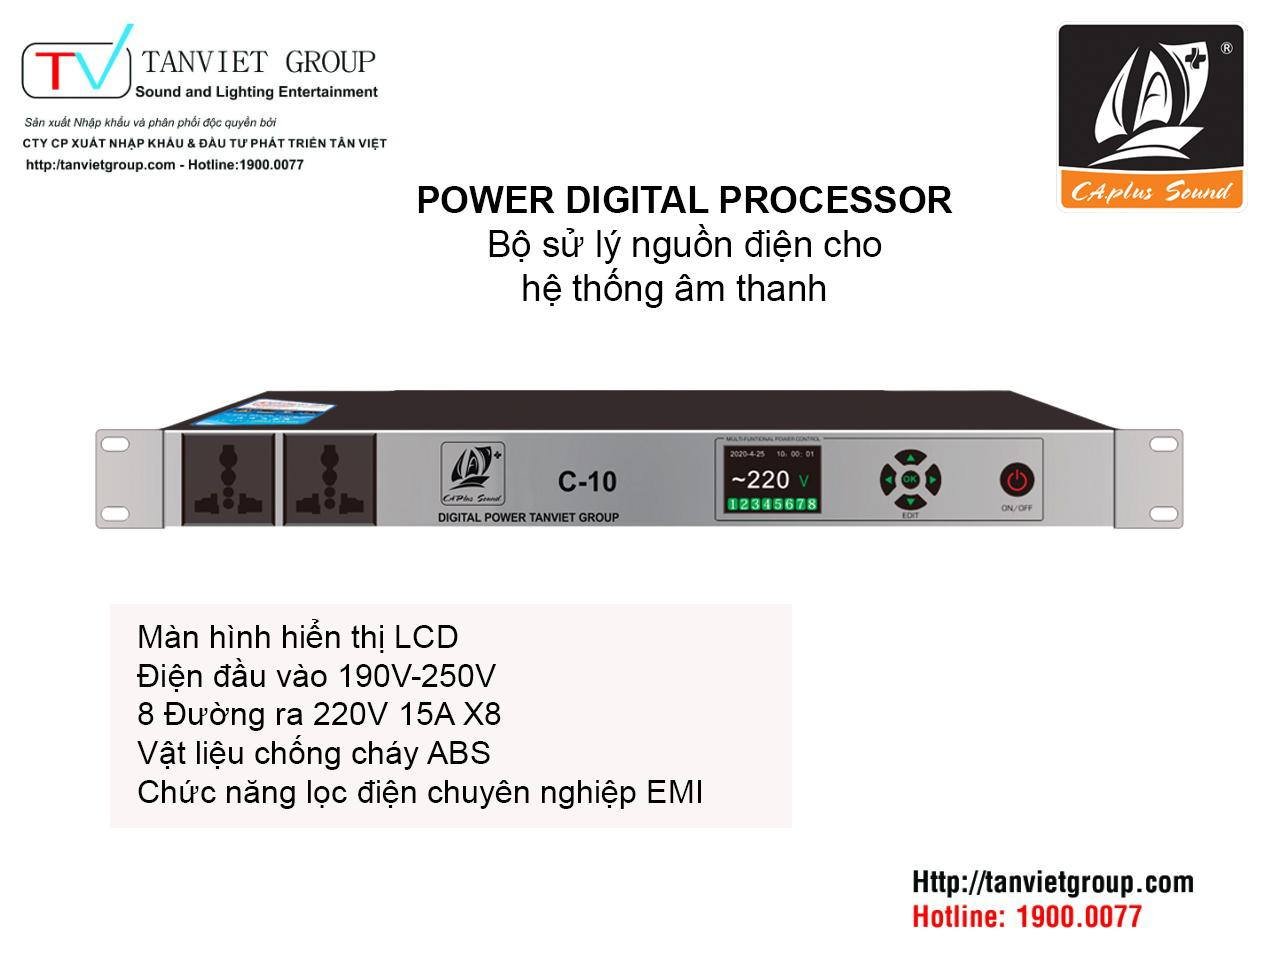 POWER DIGITAL PROCESSOR